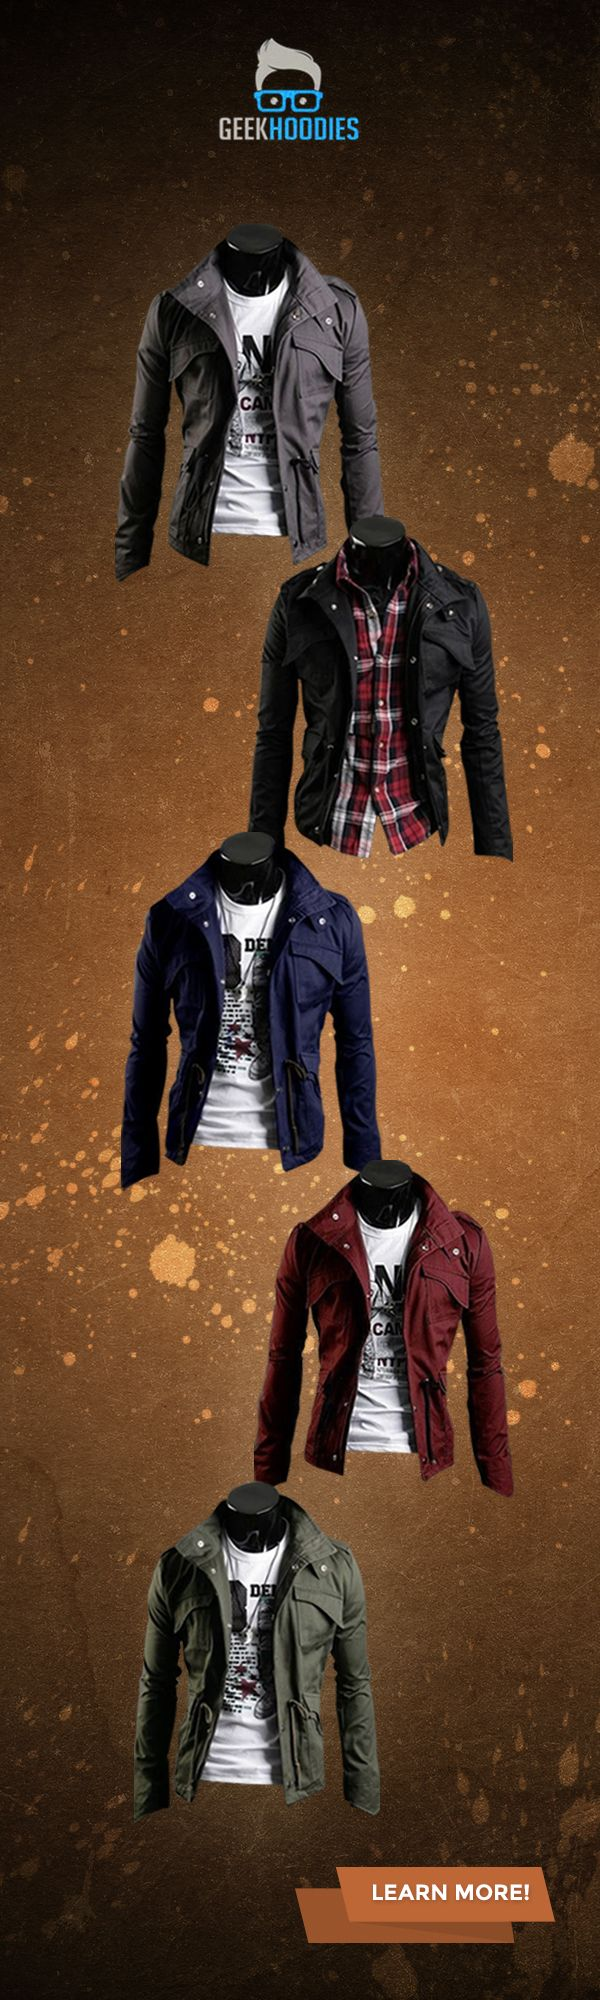 The Military Jacket #jacket #geek #fashion Visit us for more: http://geekhoodies.com/